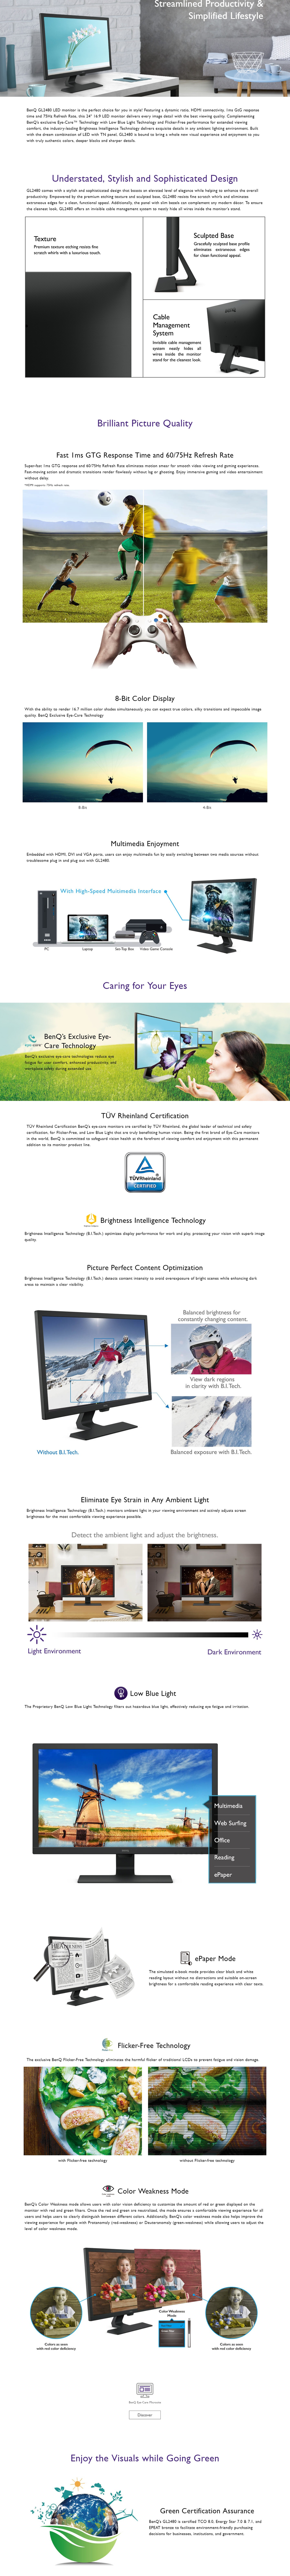 """A large marketing image providing additional information about the product BenQ GL2480 24"""" Full HD 75Hz LED Gaming Monitor - Additional alt info not provided"""